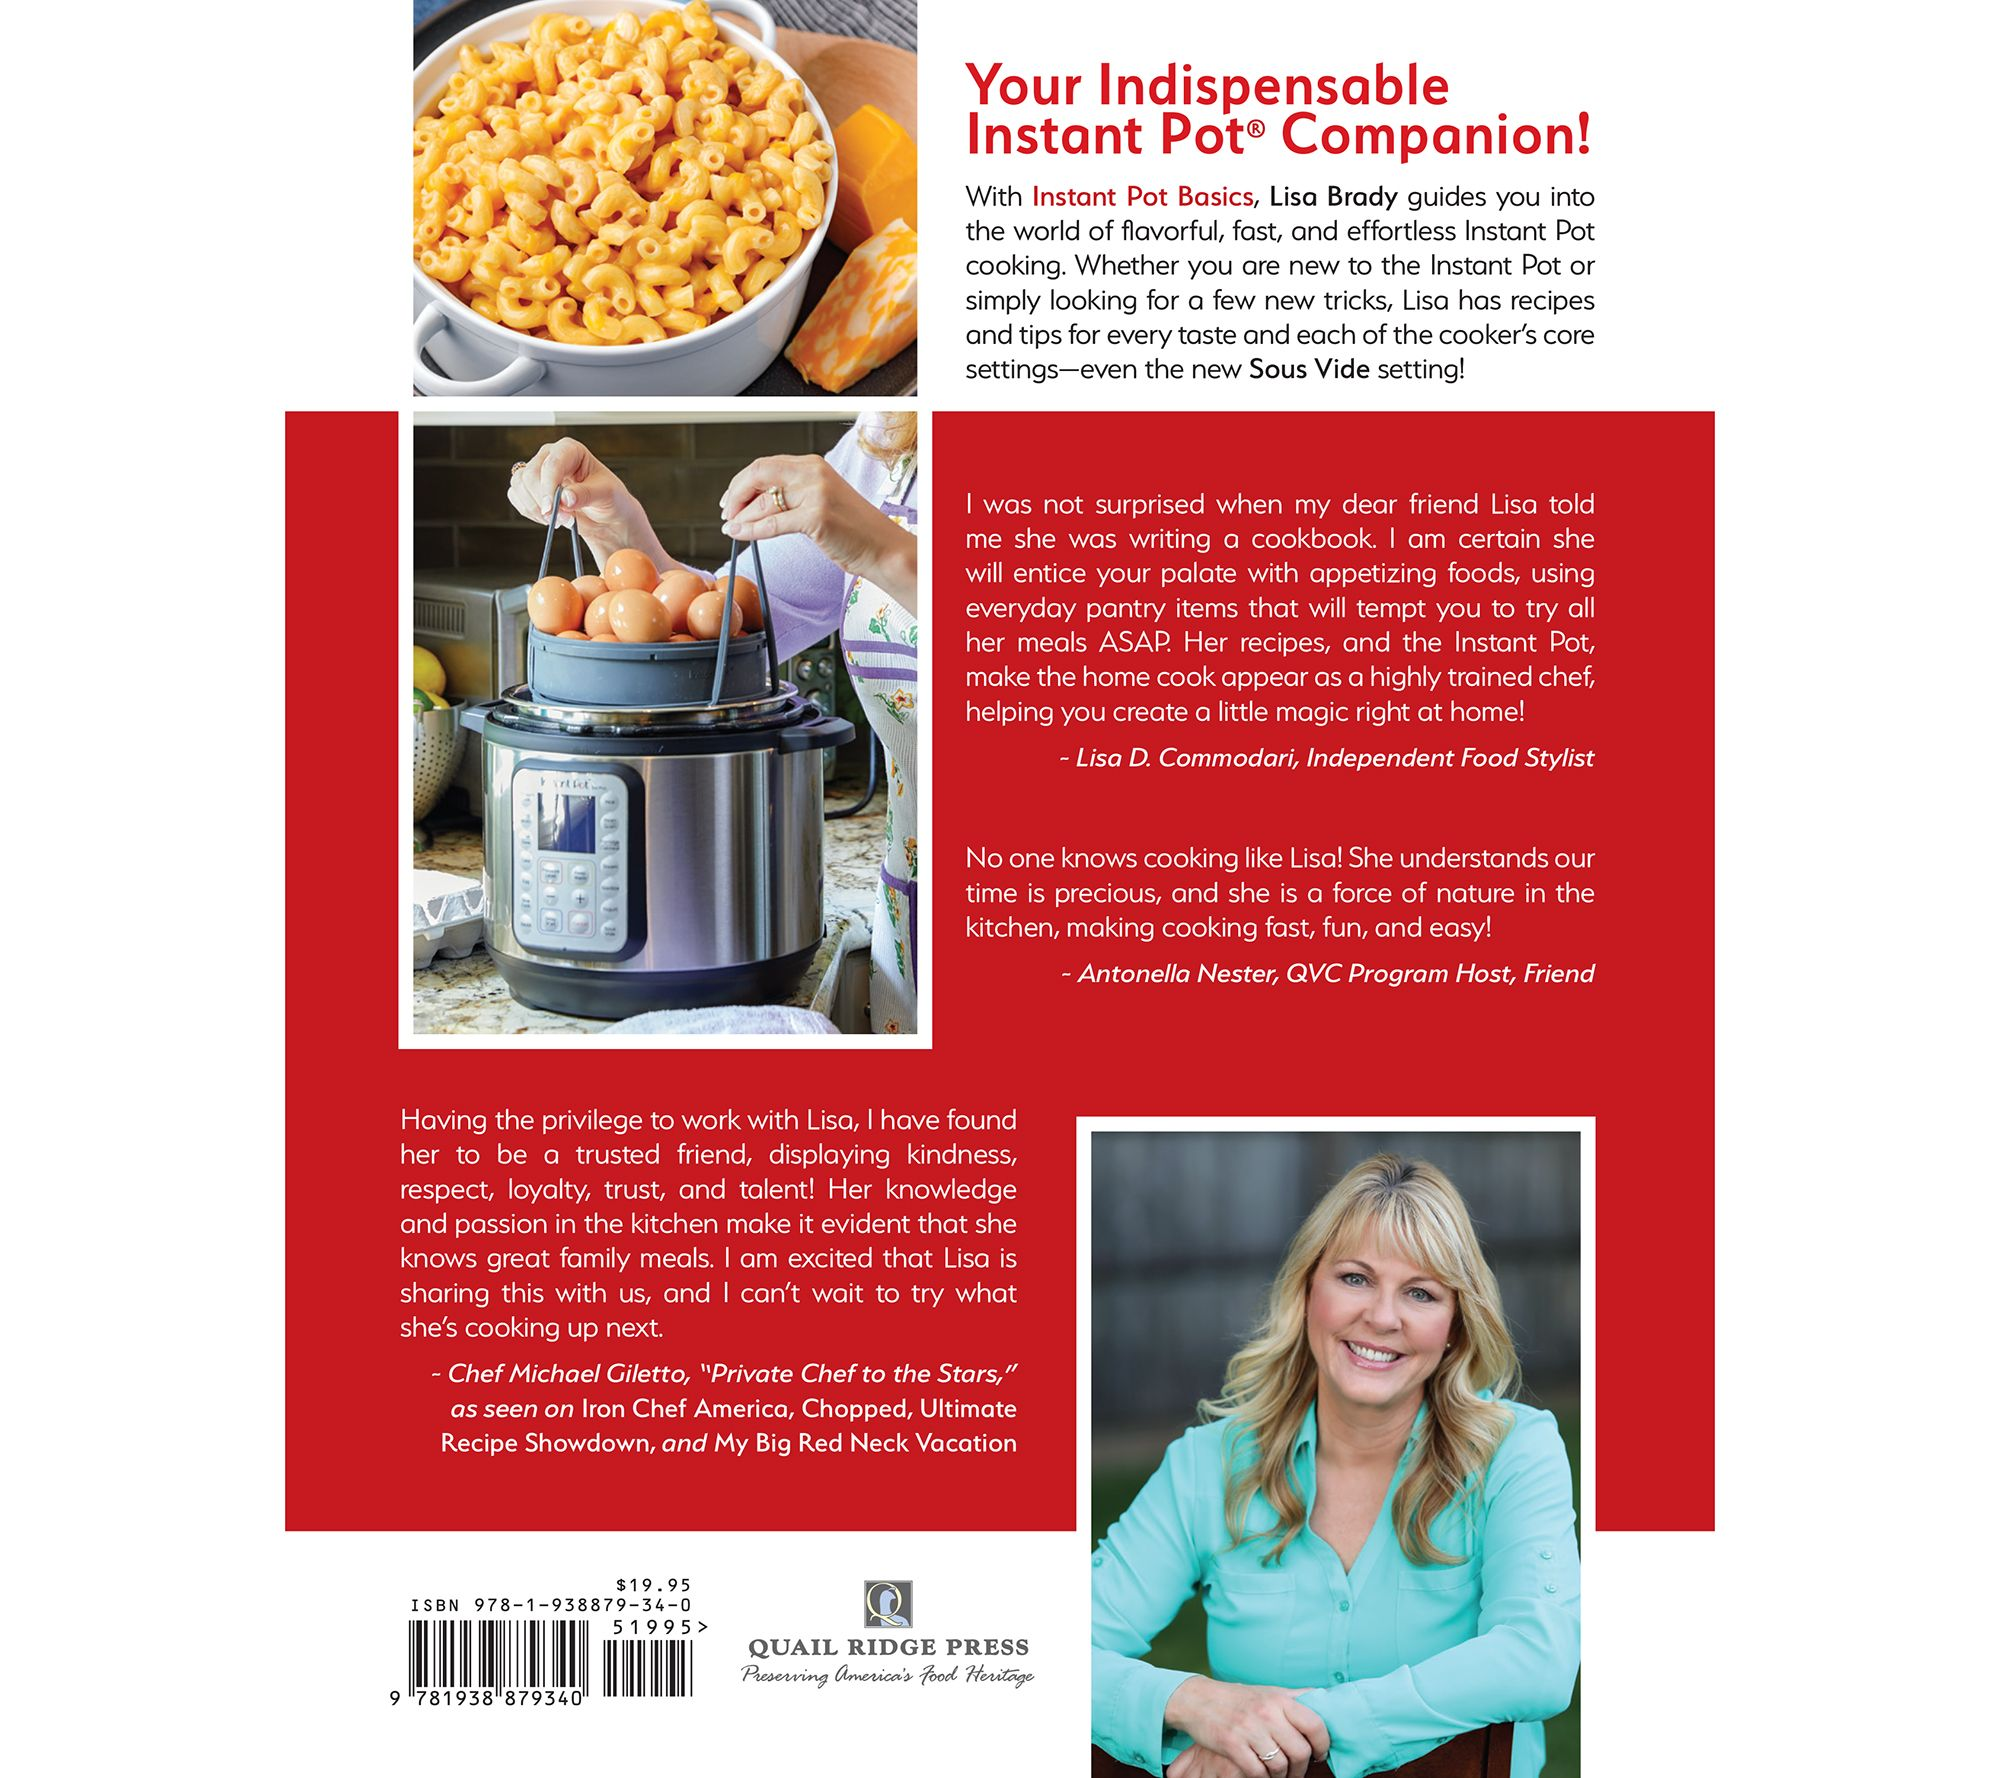 Instant Pot Basics - The Essential Guide by Lisa Brady — QVC com